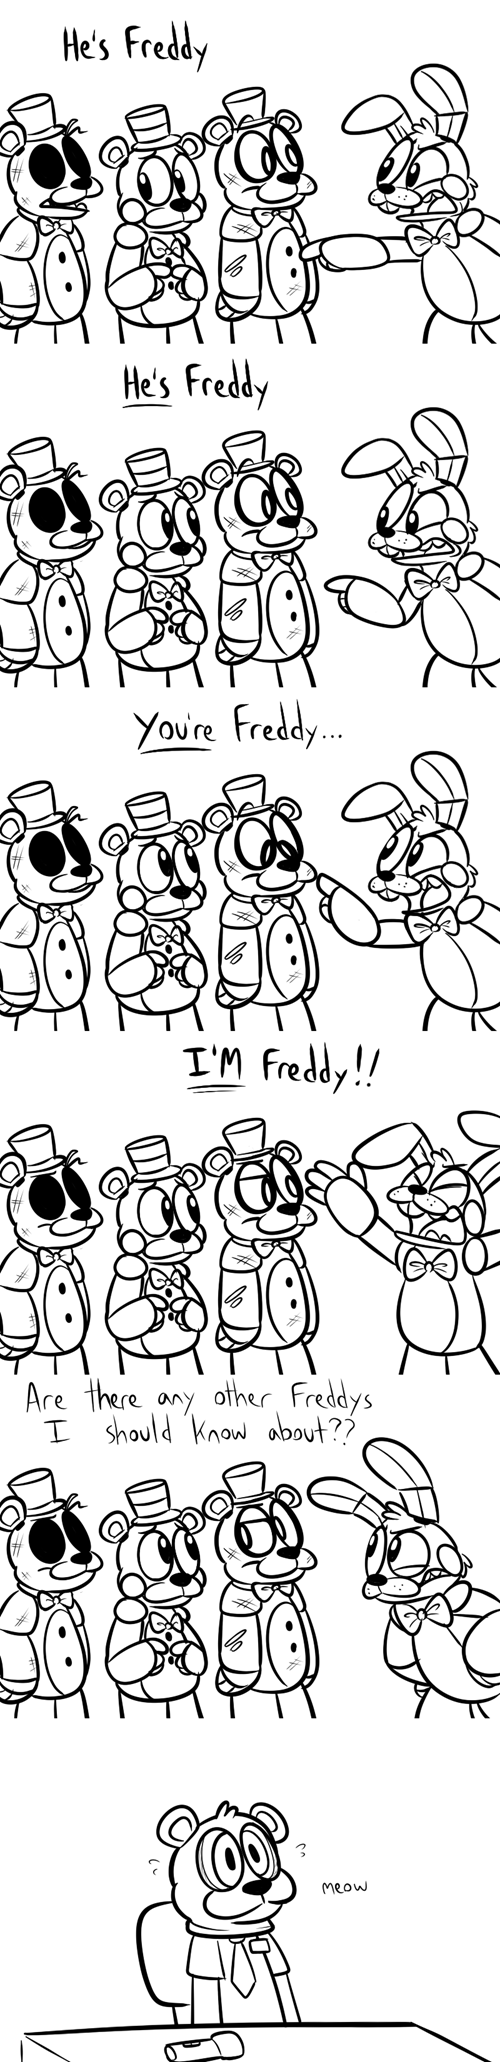 freddy fazbear five nights at freddy's - 8376802304